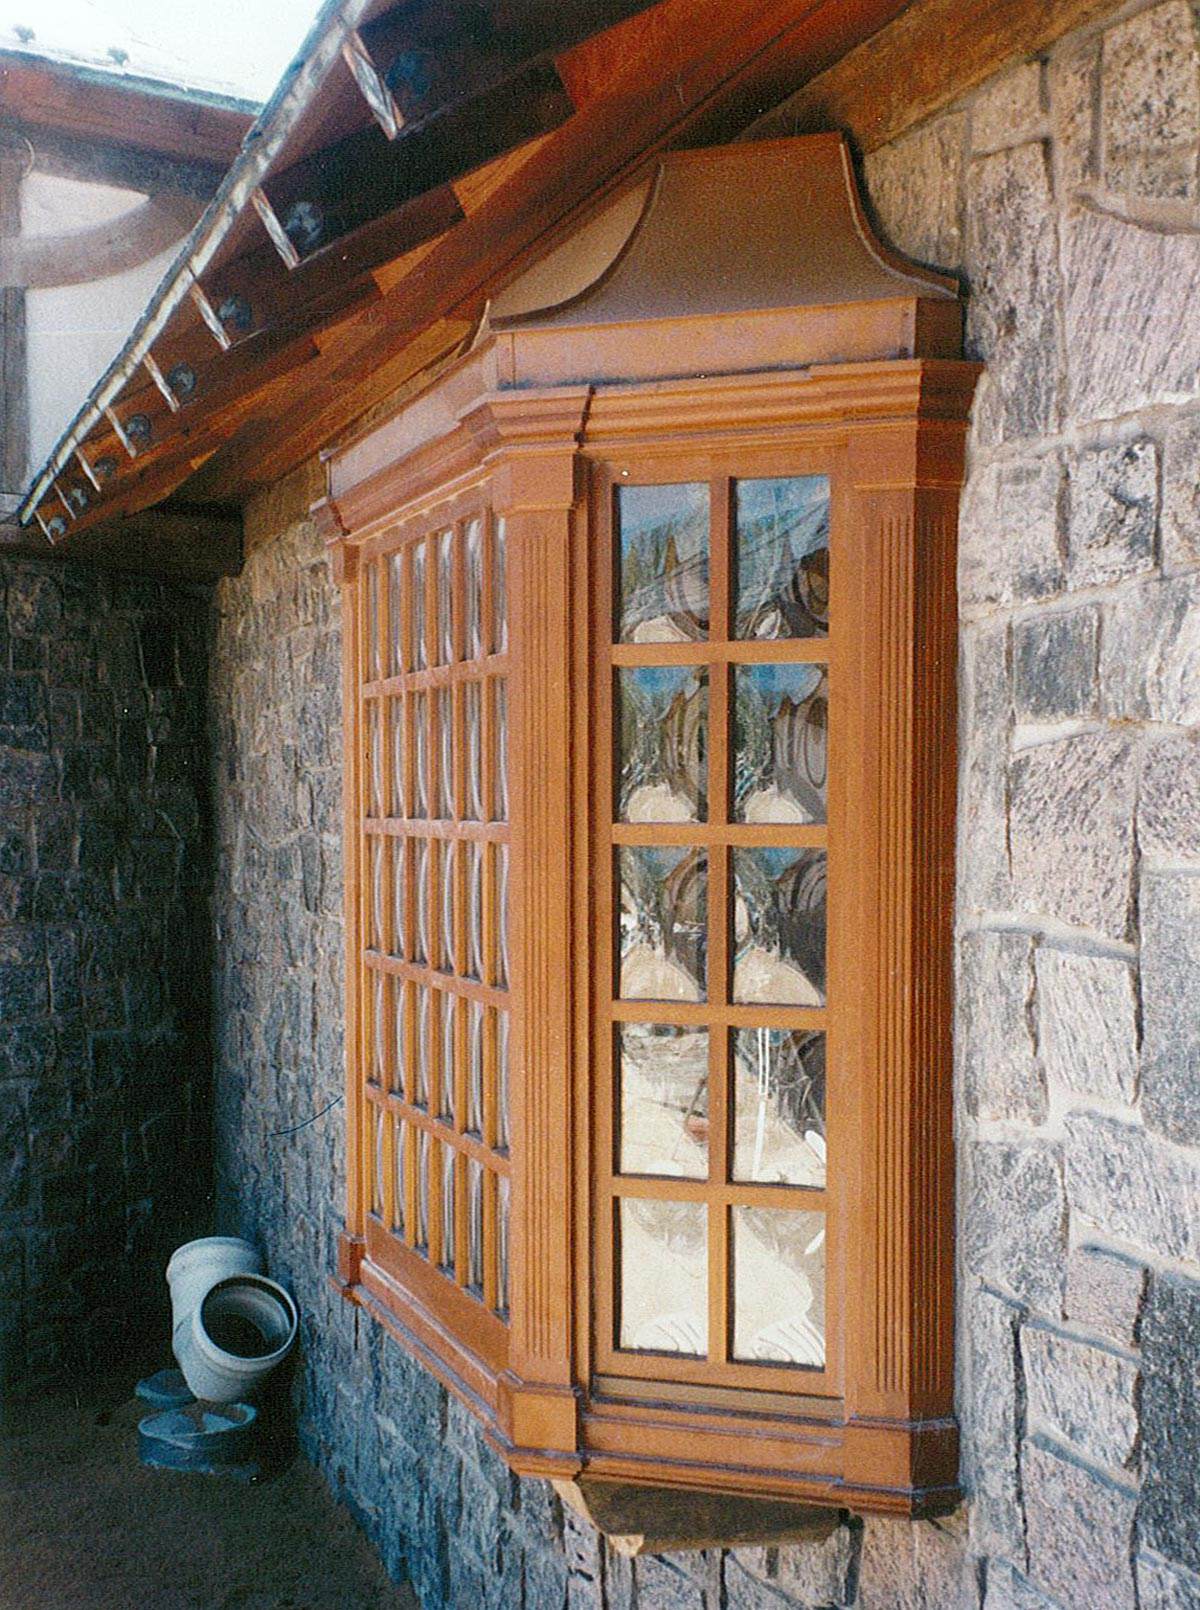 Bay Window with Convex Bent Glass in True Divided Lites